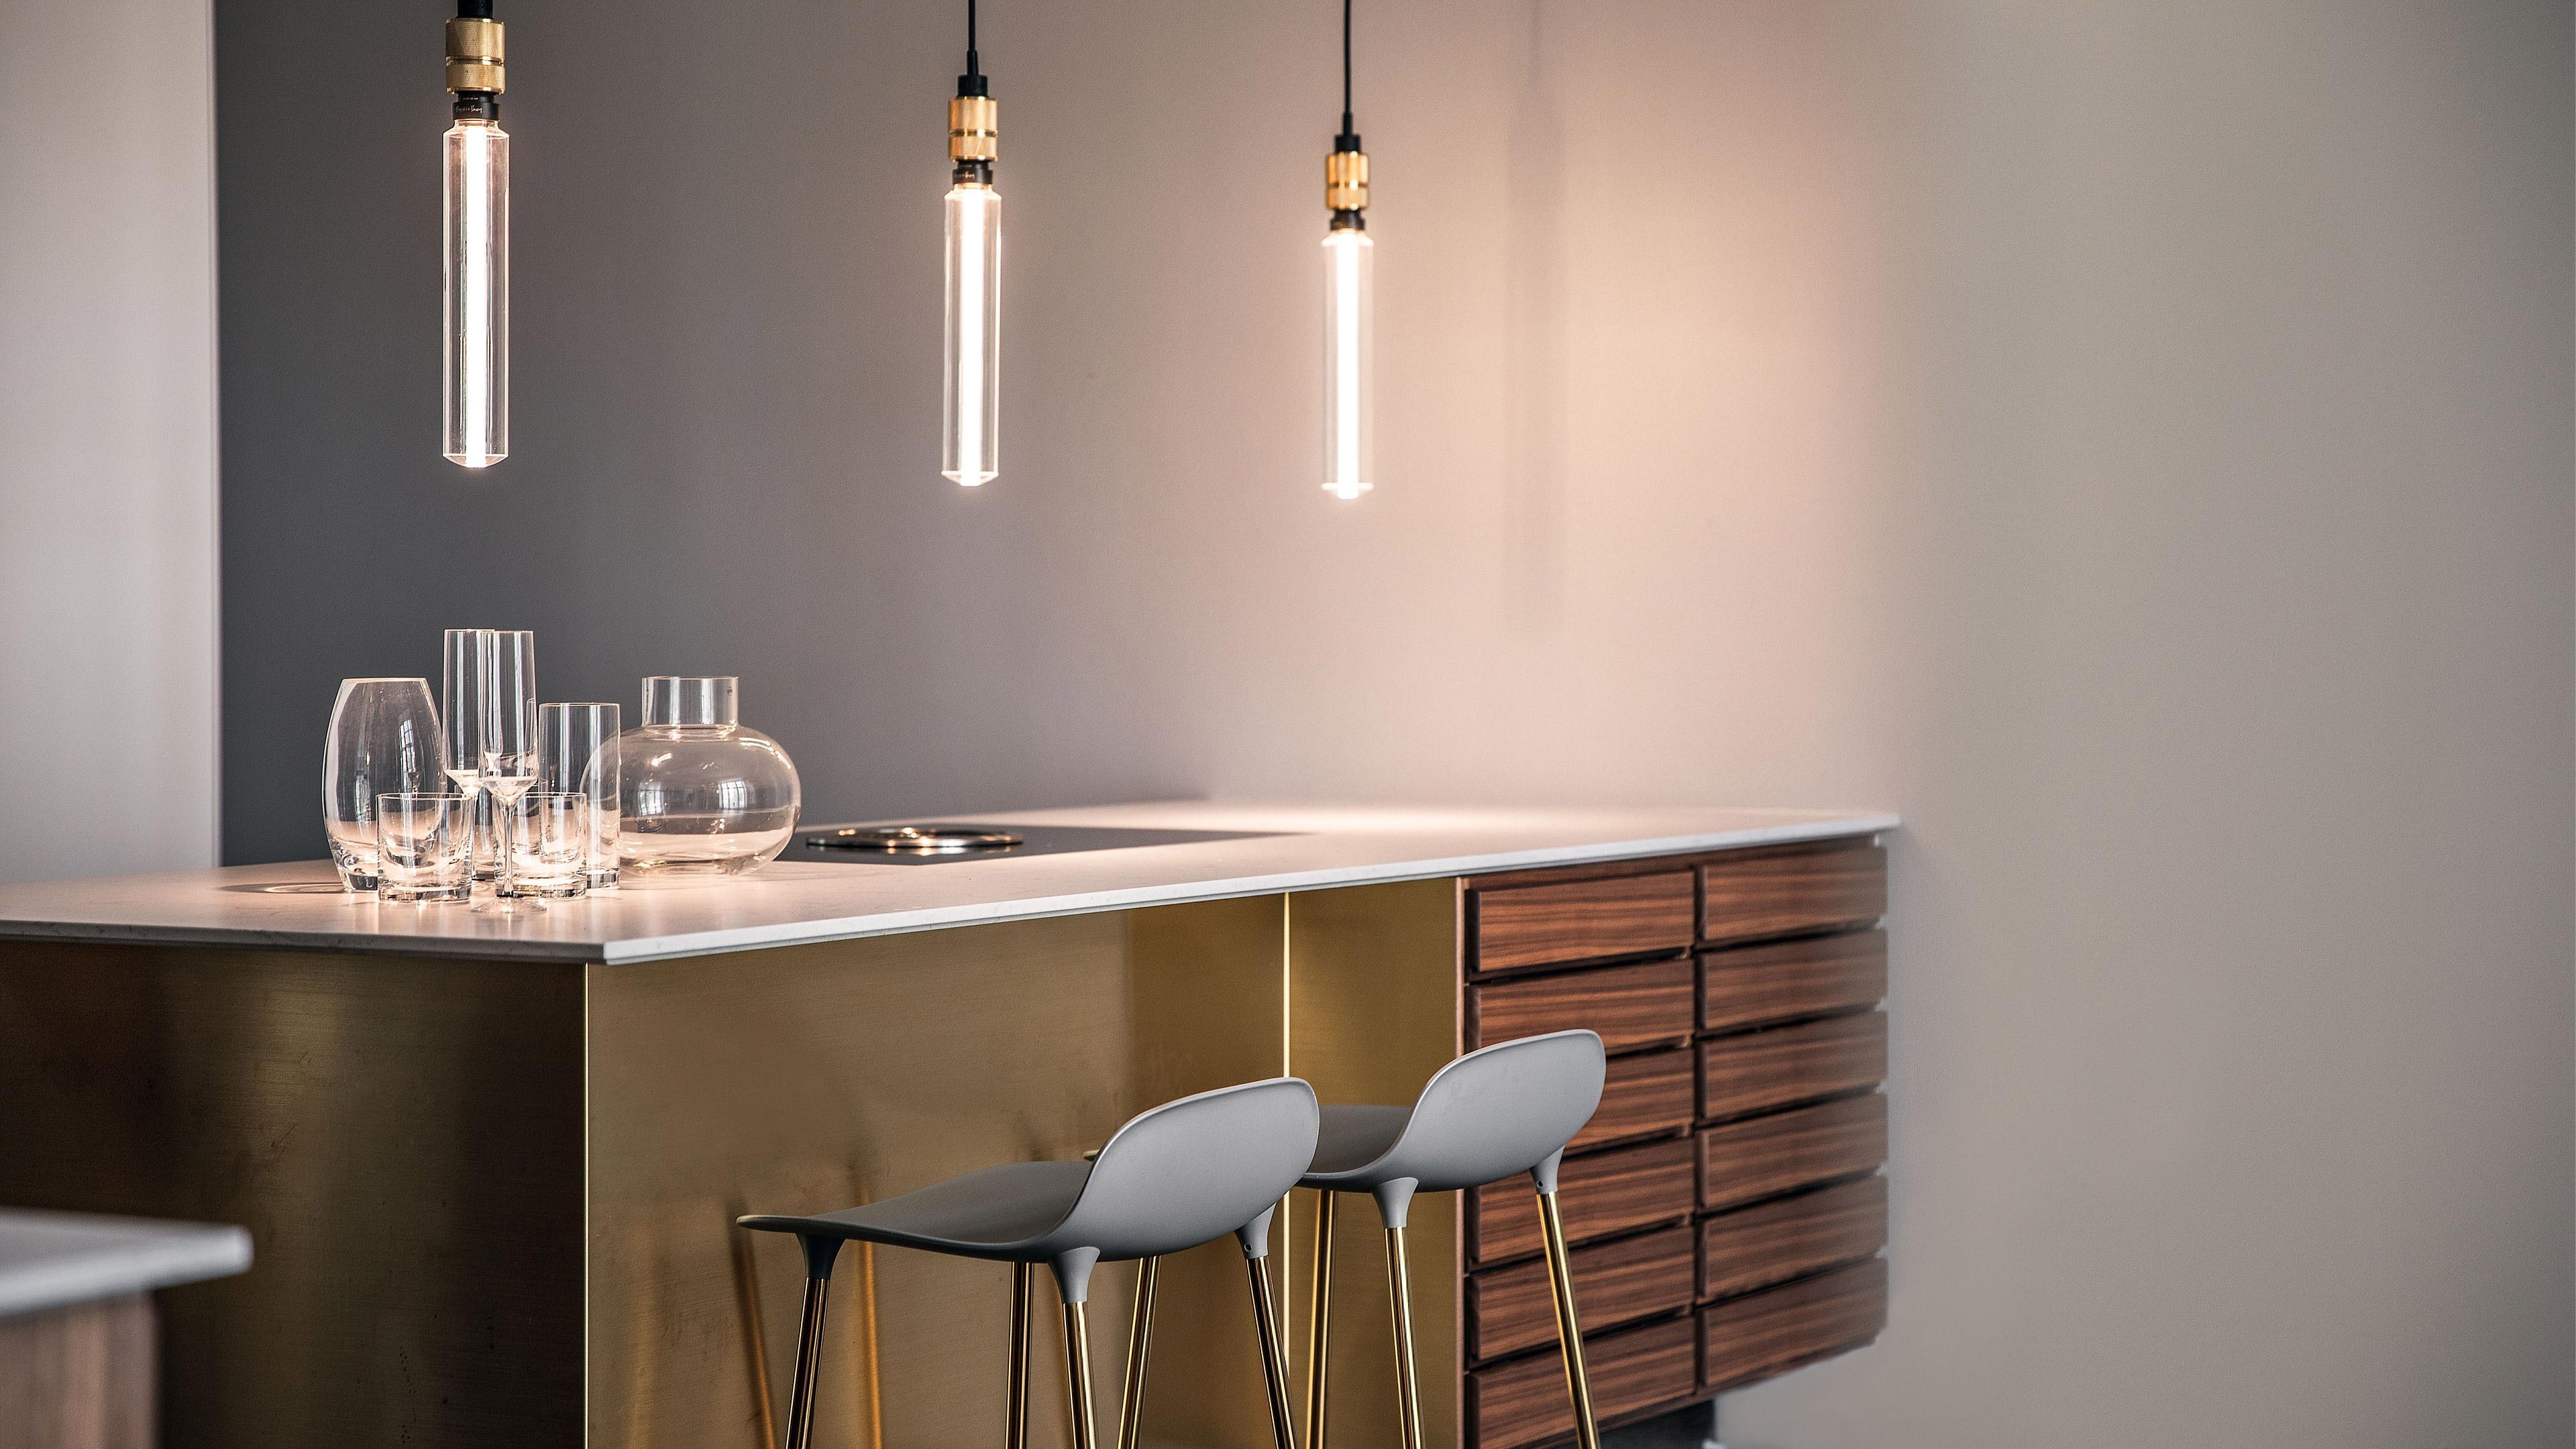 WHEN THE KITCHEN SEEMS TO FLOAT ON THIN AIR